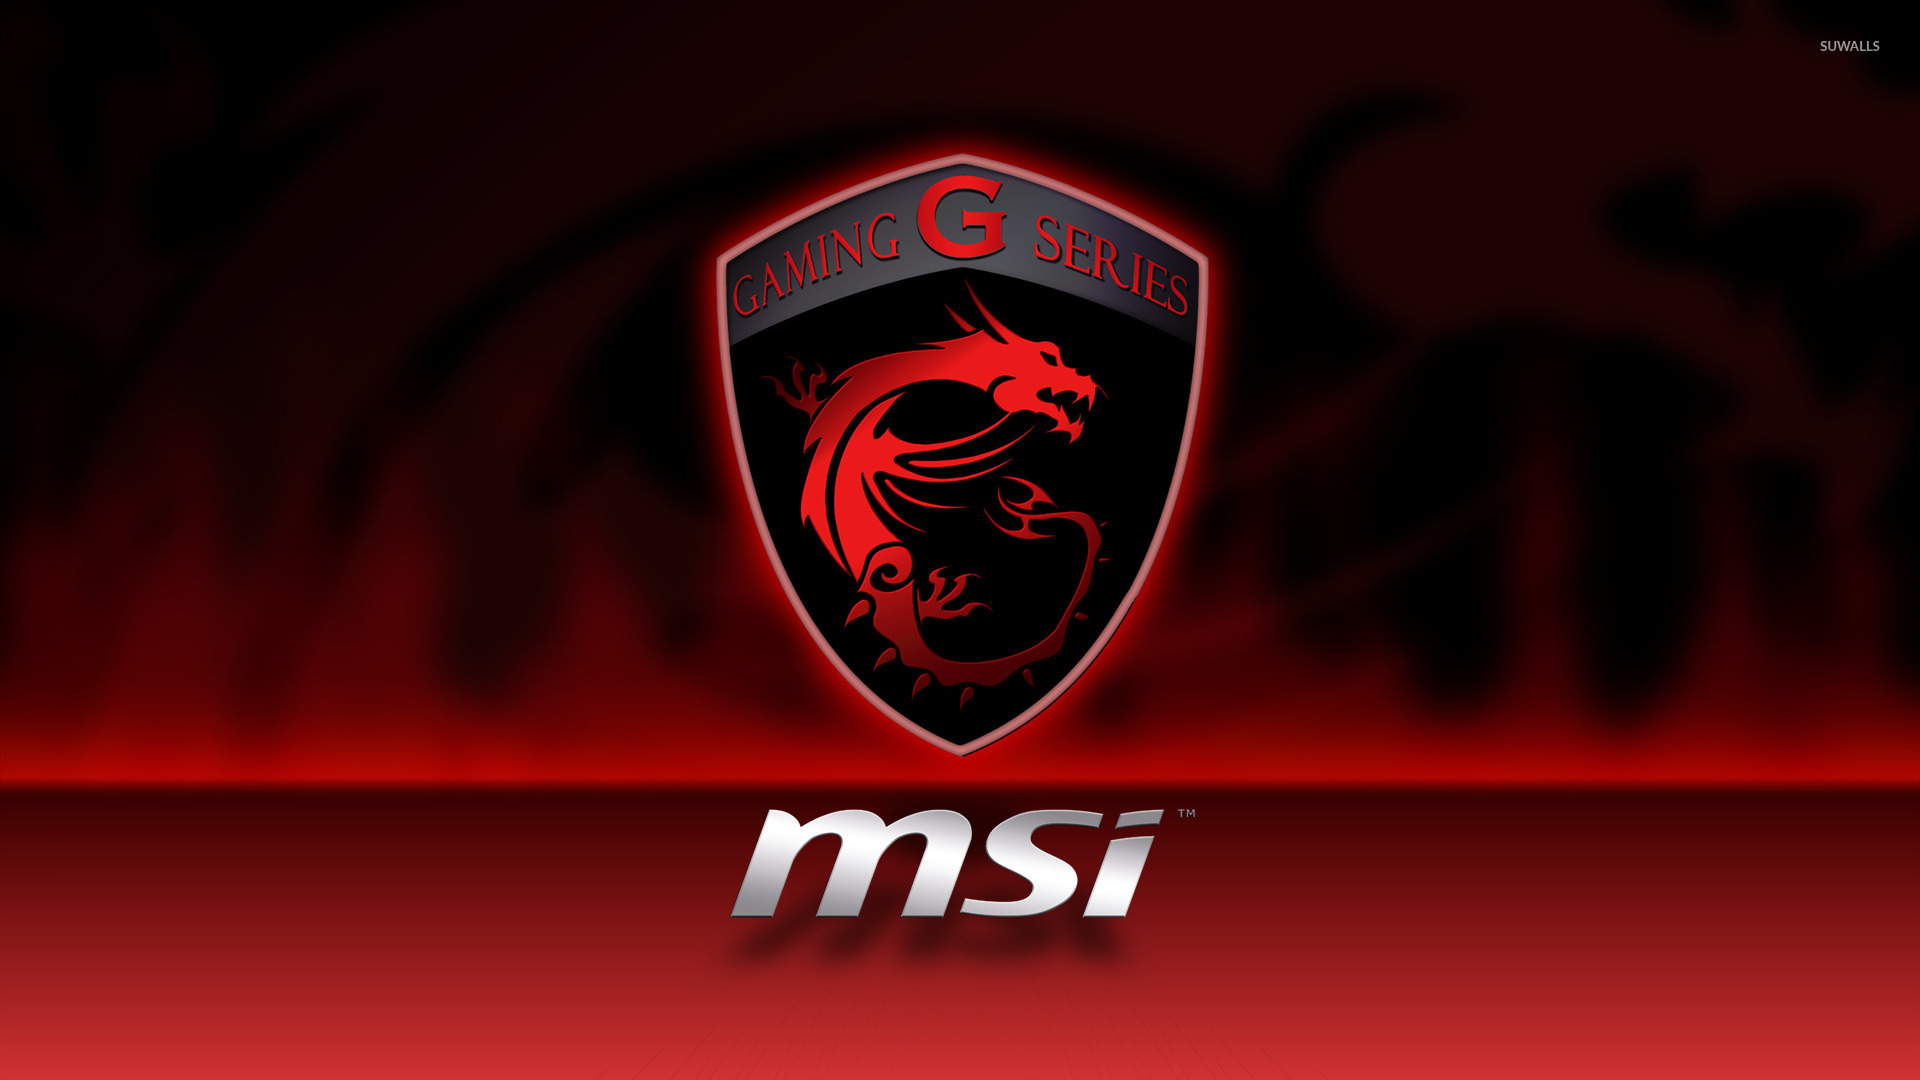 MSI wallpaper   Computer wallpapers   29111 1920x1080